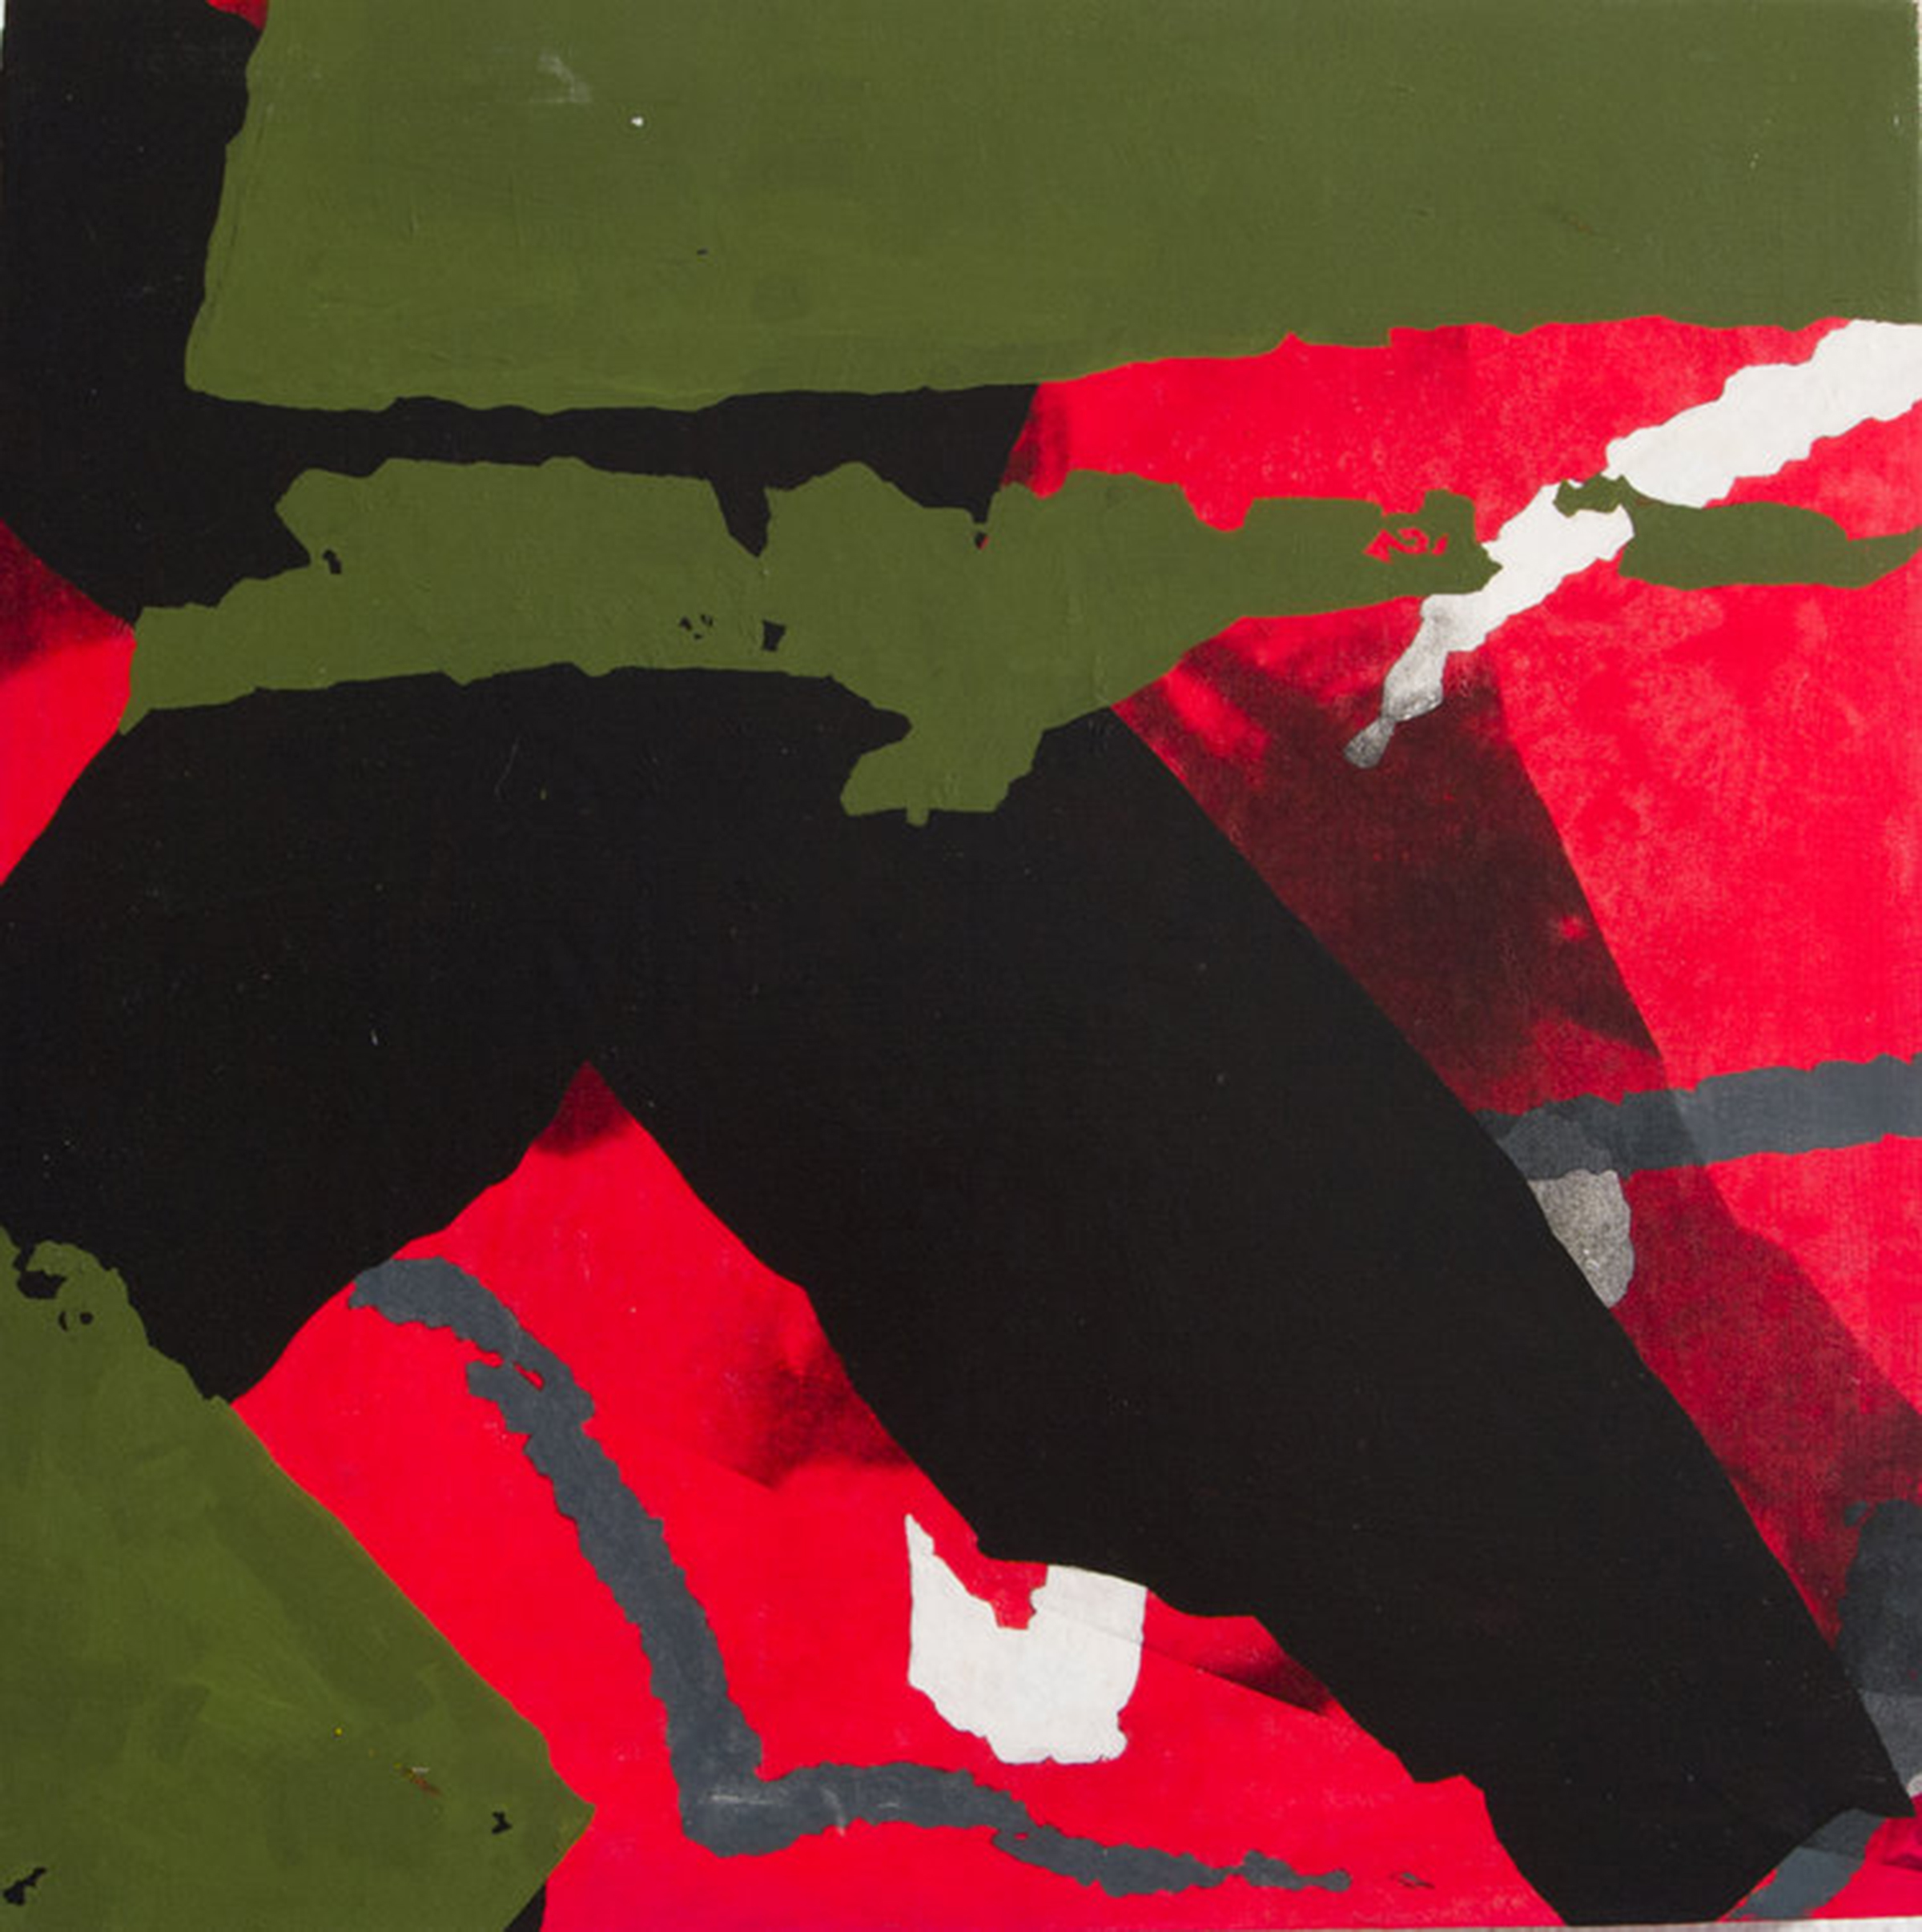 Green, red, black and white abstractions